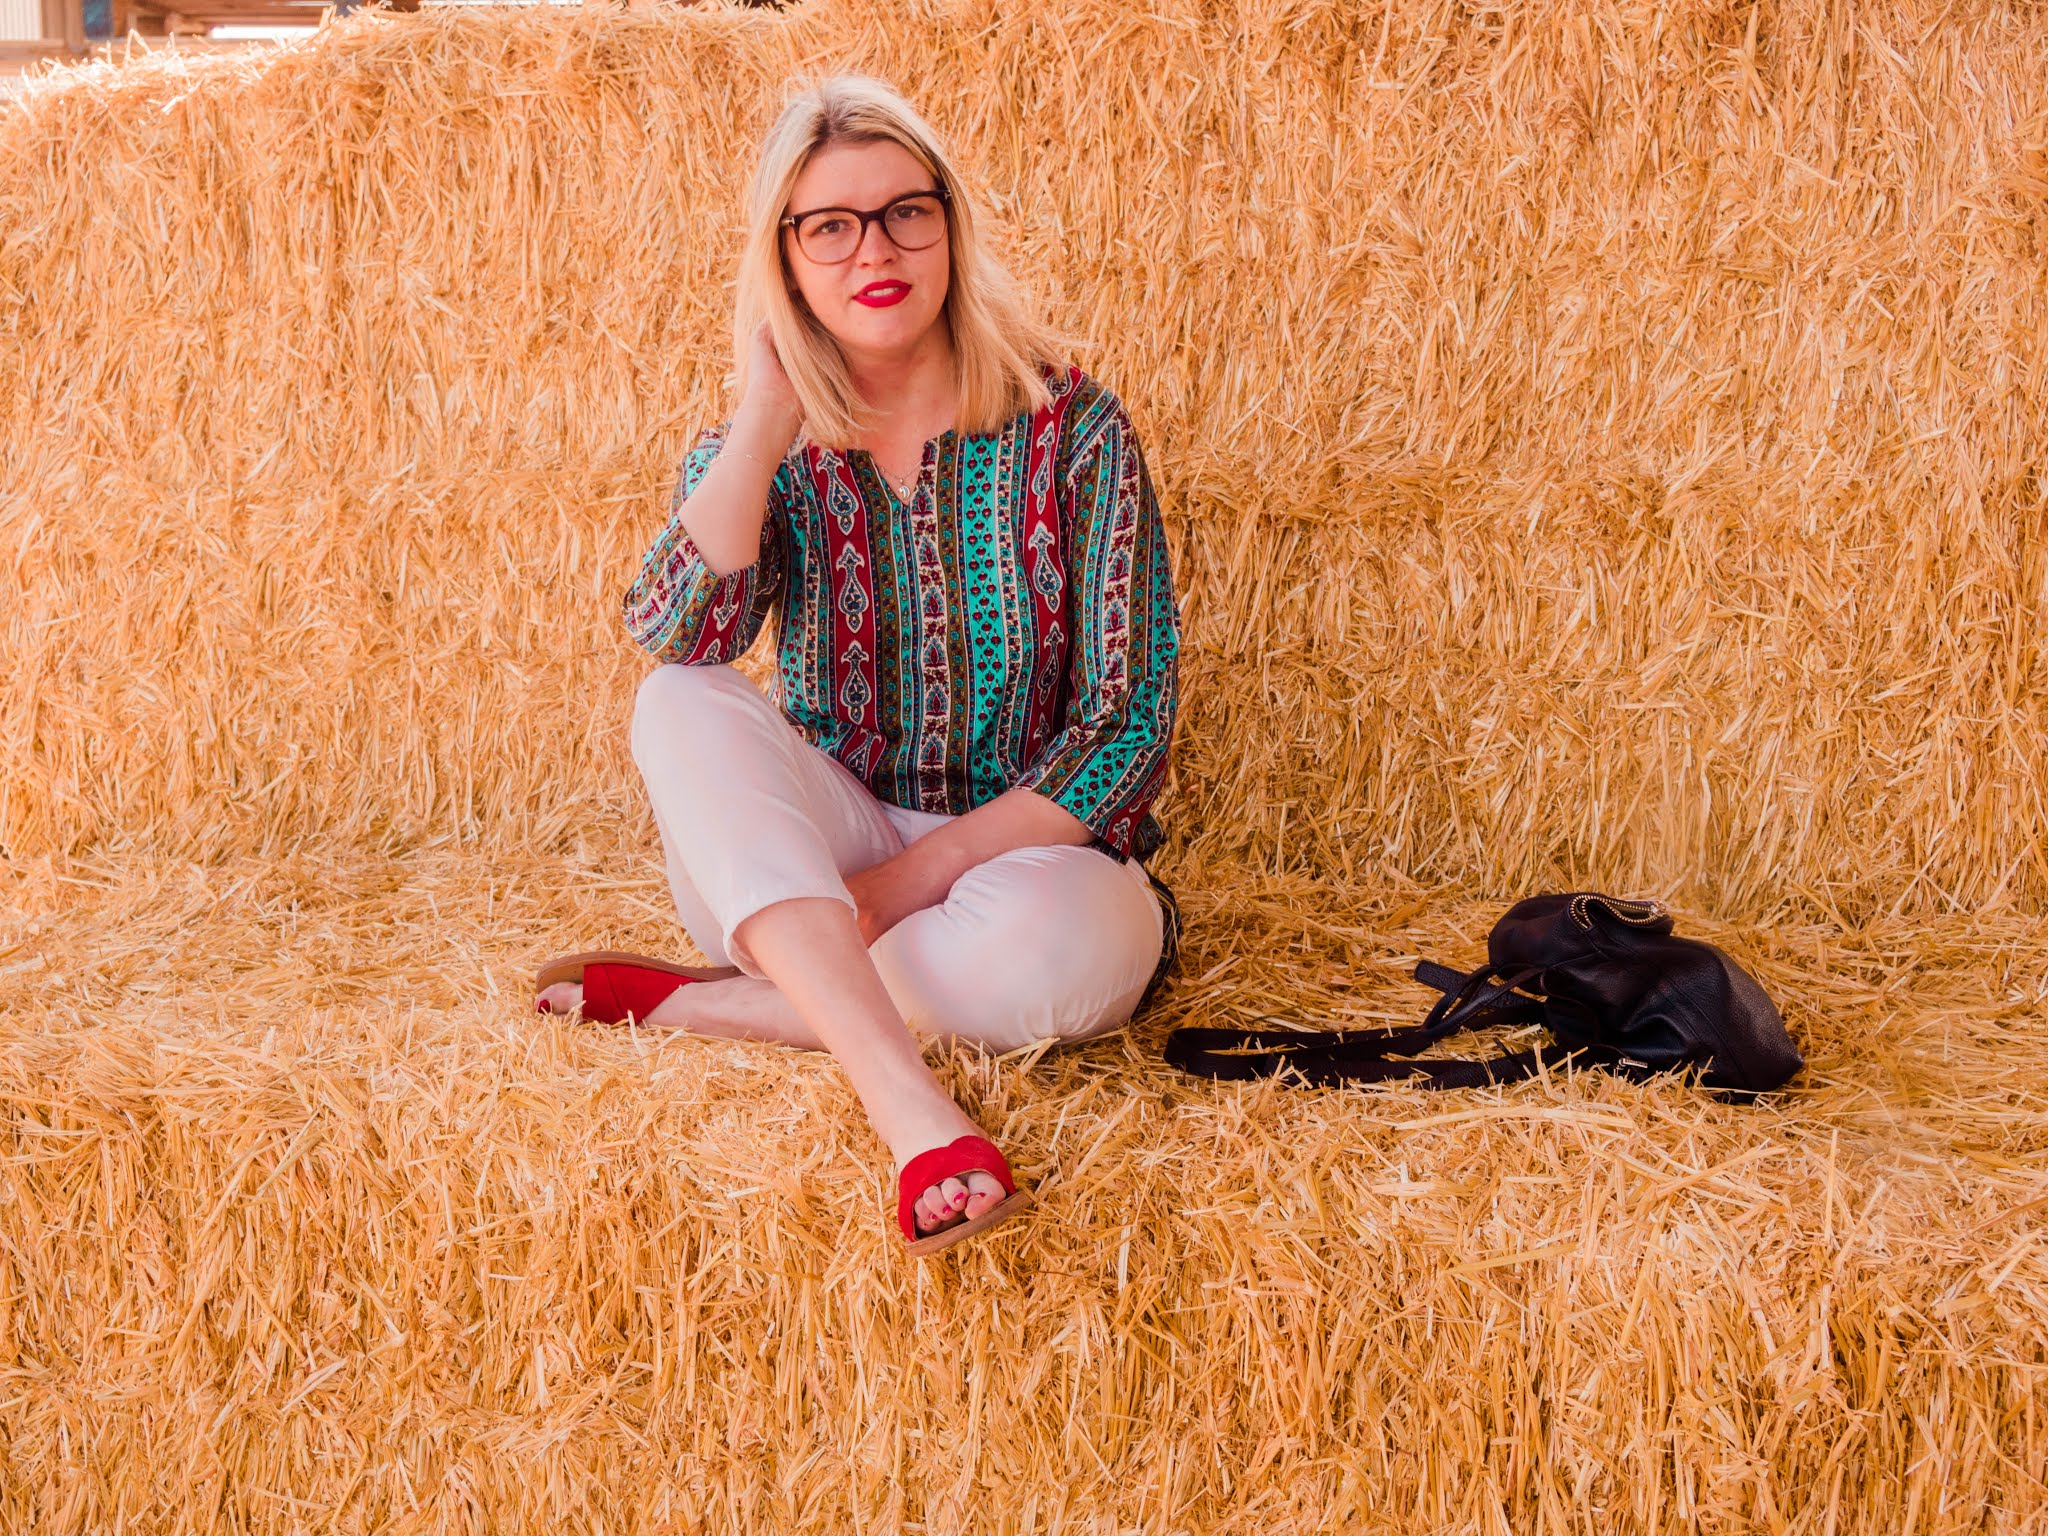 Fashion Blogger Chloe Harriets - on haystack wearing colour printed tee bought in India - New Habits Blog Post